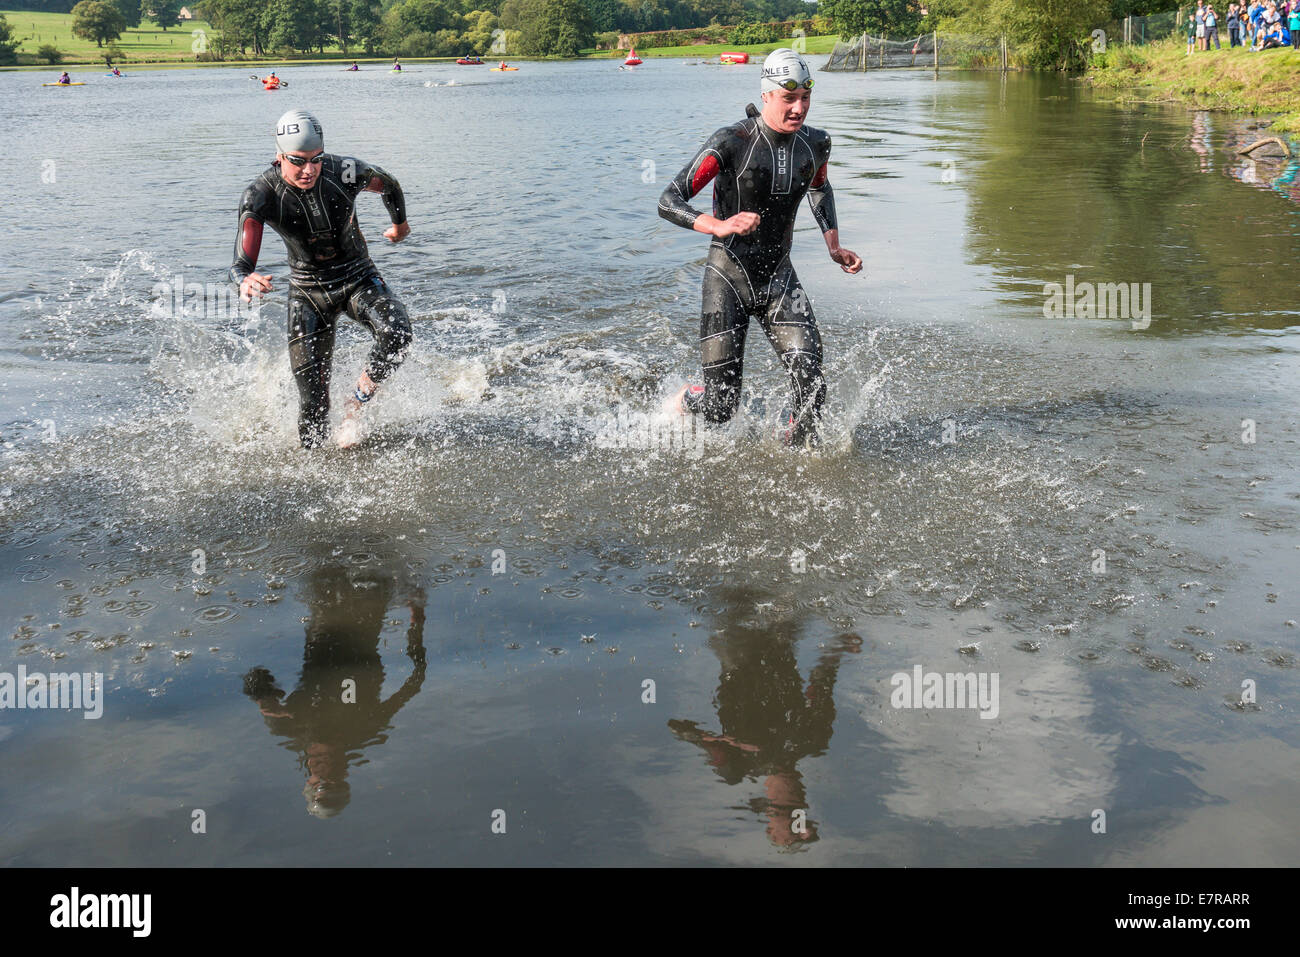 Brownlee Brothers at the Brownlee Tri North event at Harewood house coming out of the swim as swim stage - Stock Image